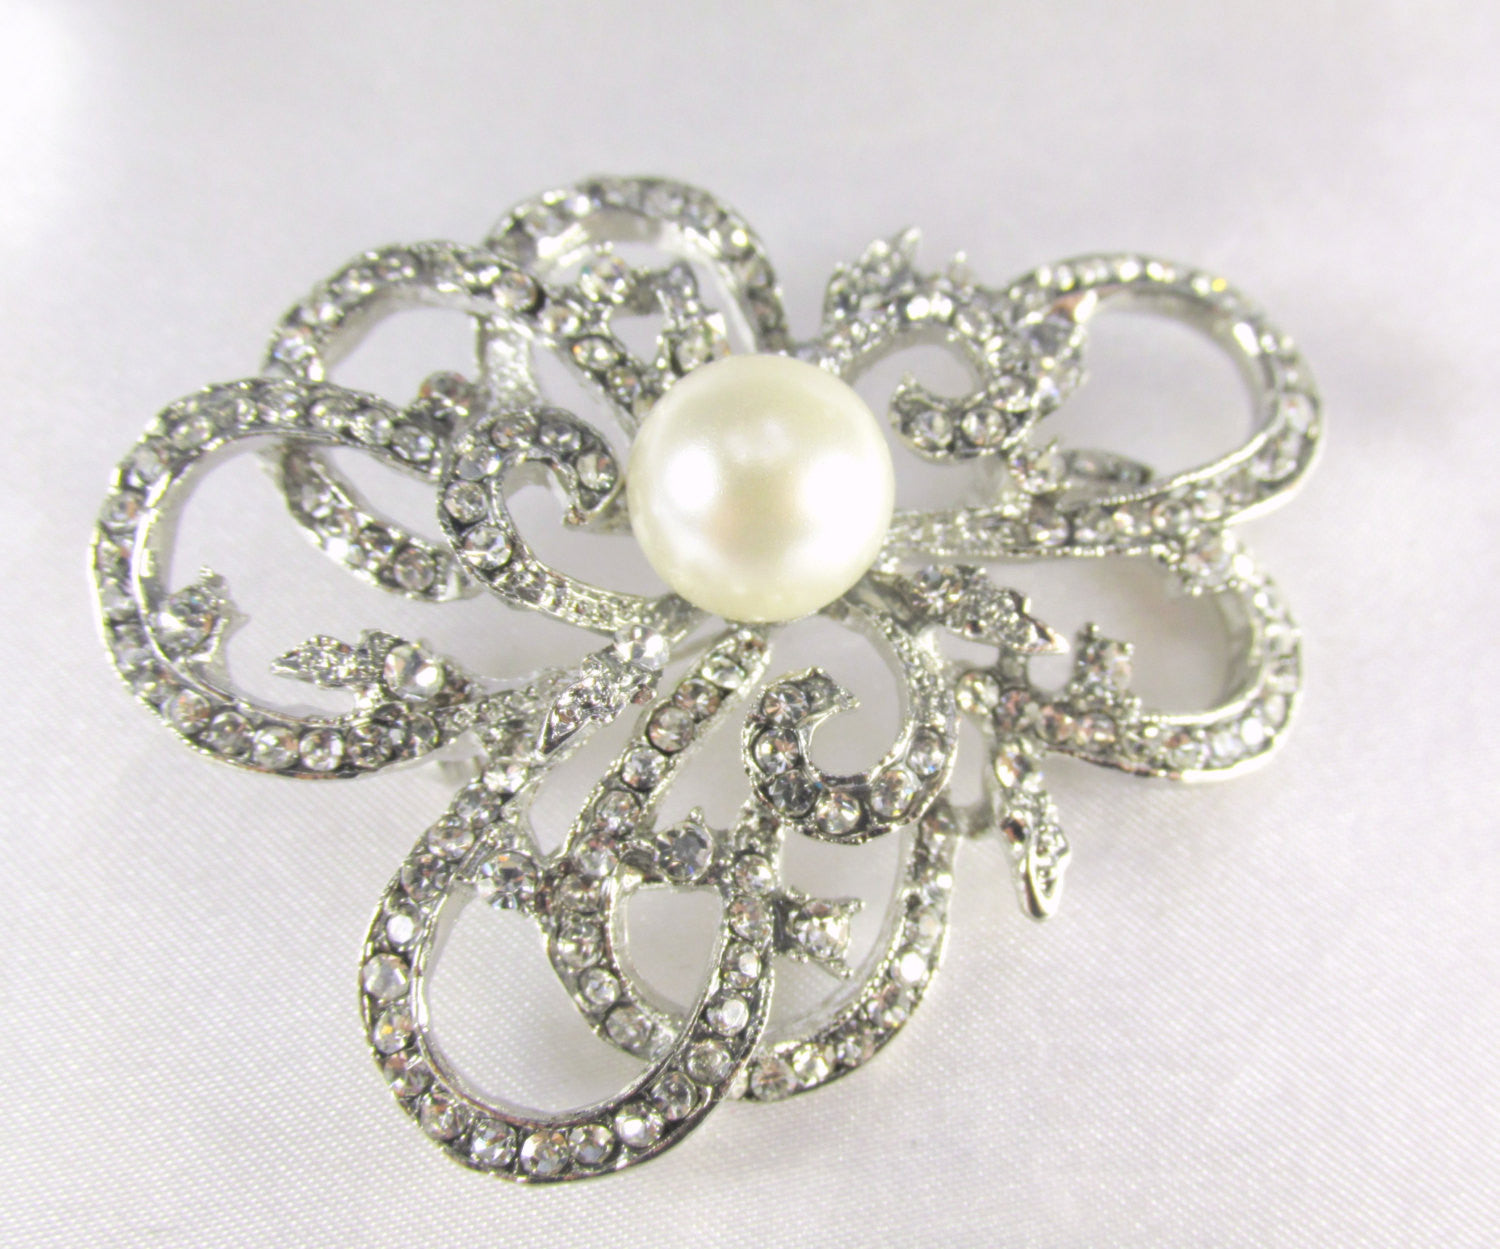 Ivory Off White Pearl Heart Brooch in Antique Silver - Odyssey Cache - 4